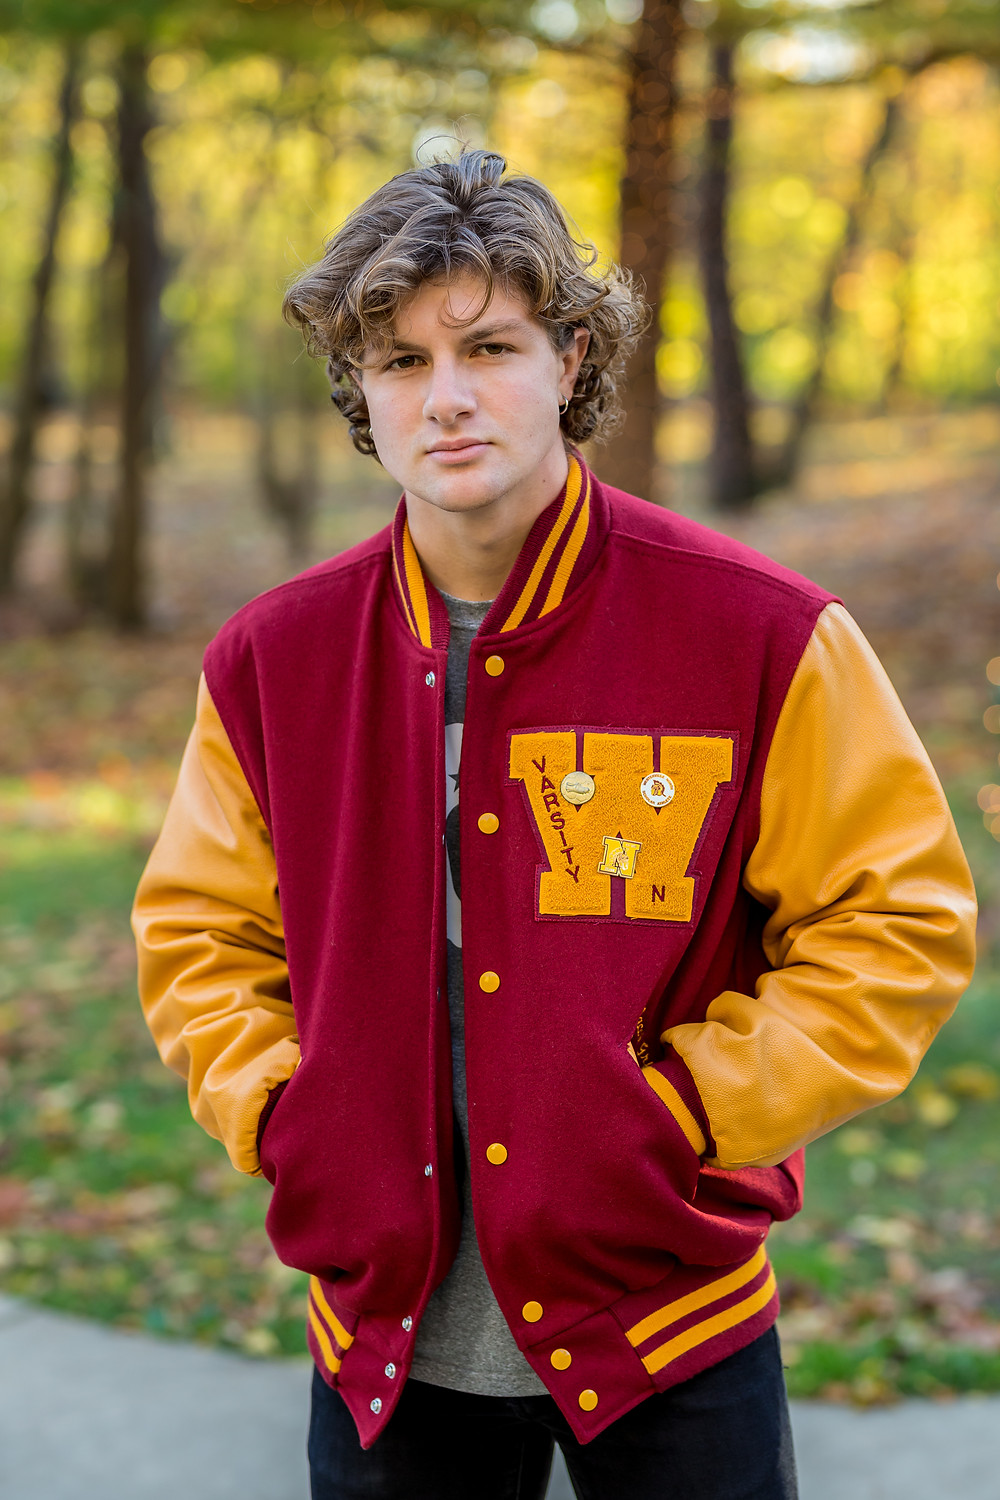 Westerville North senior in varsity jacket in park in Fall in Ohio